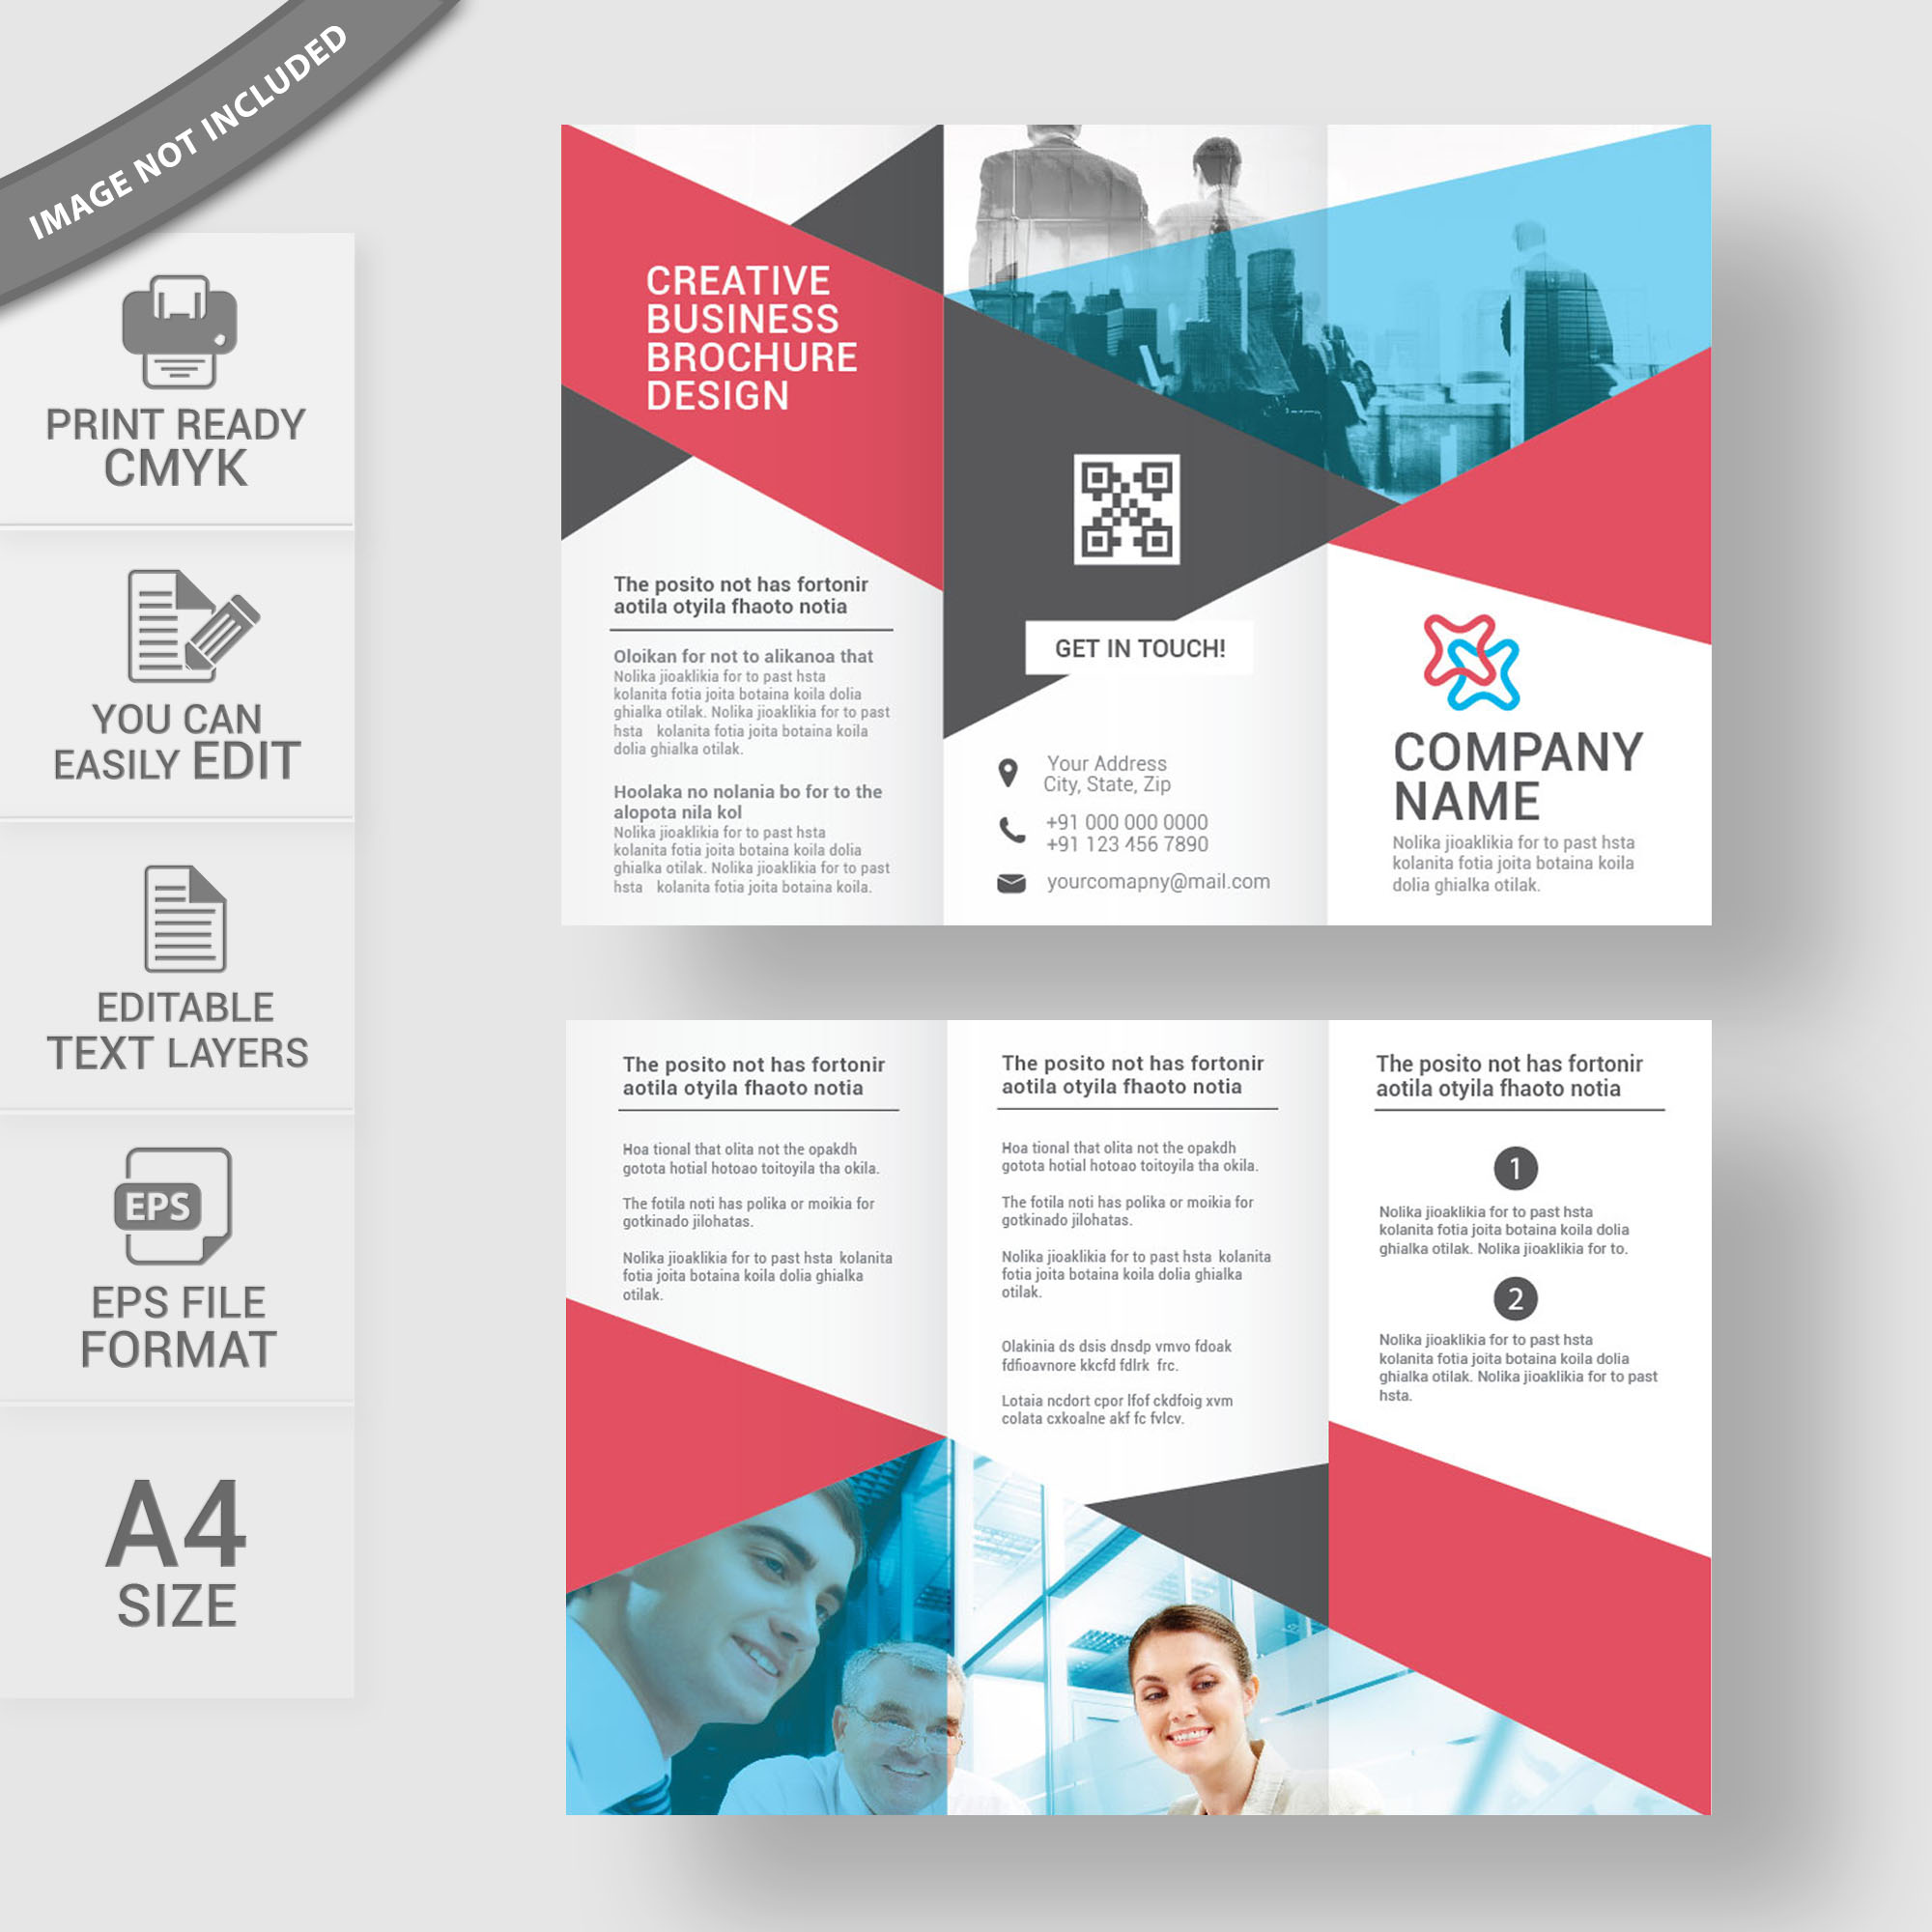 TriFold Brochure Template Free Download Print Ready Wisxicom - Tri fold brochure templates free download